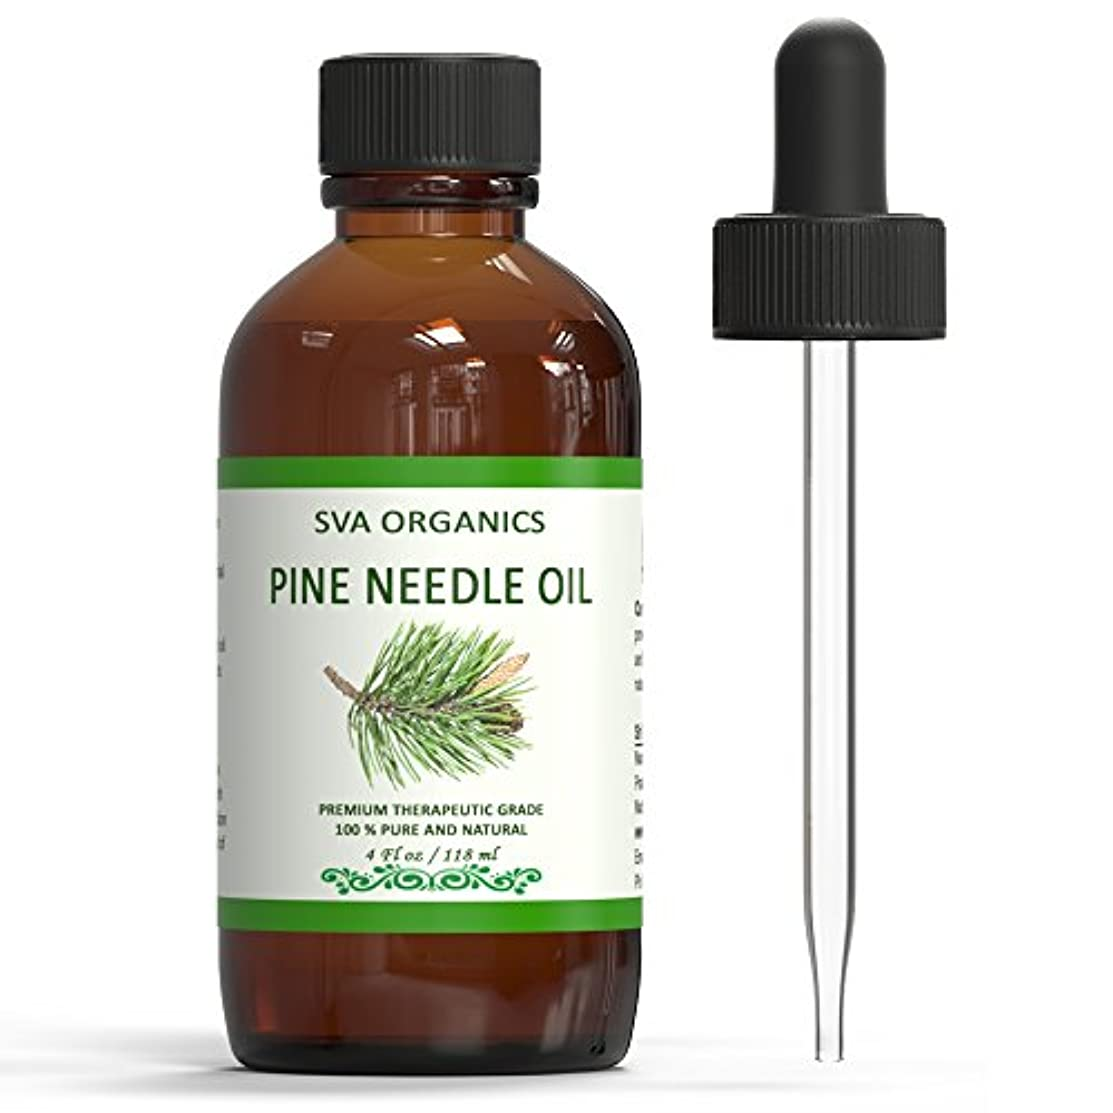 SVA ORGANICS Pine Needle Essential Oil Large Size 4 OZ (118 ML) Therapeutic Grade, 100% Pure Premium Grade Oil for Skin and Hair Care